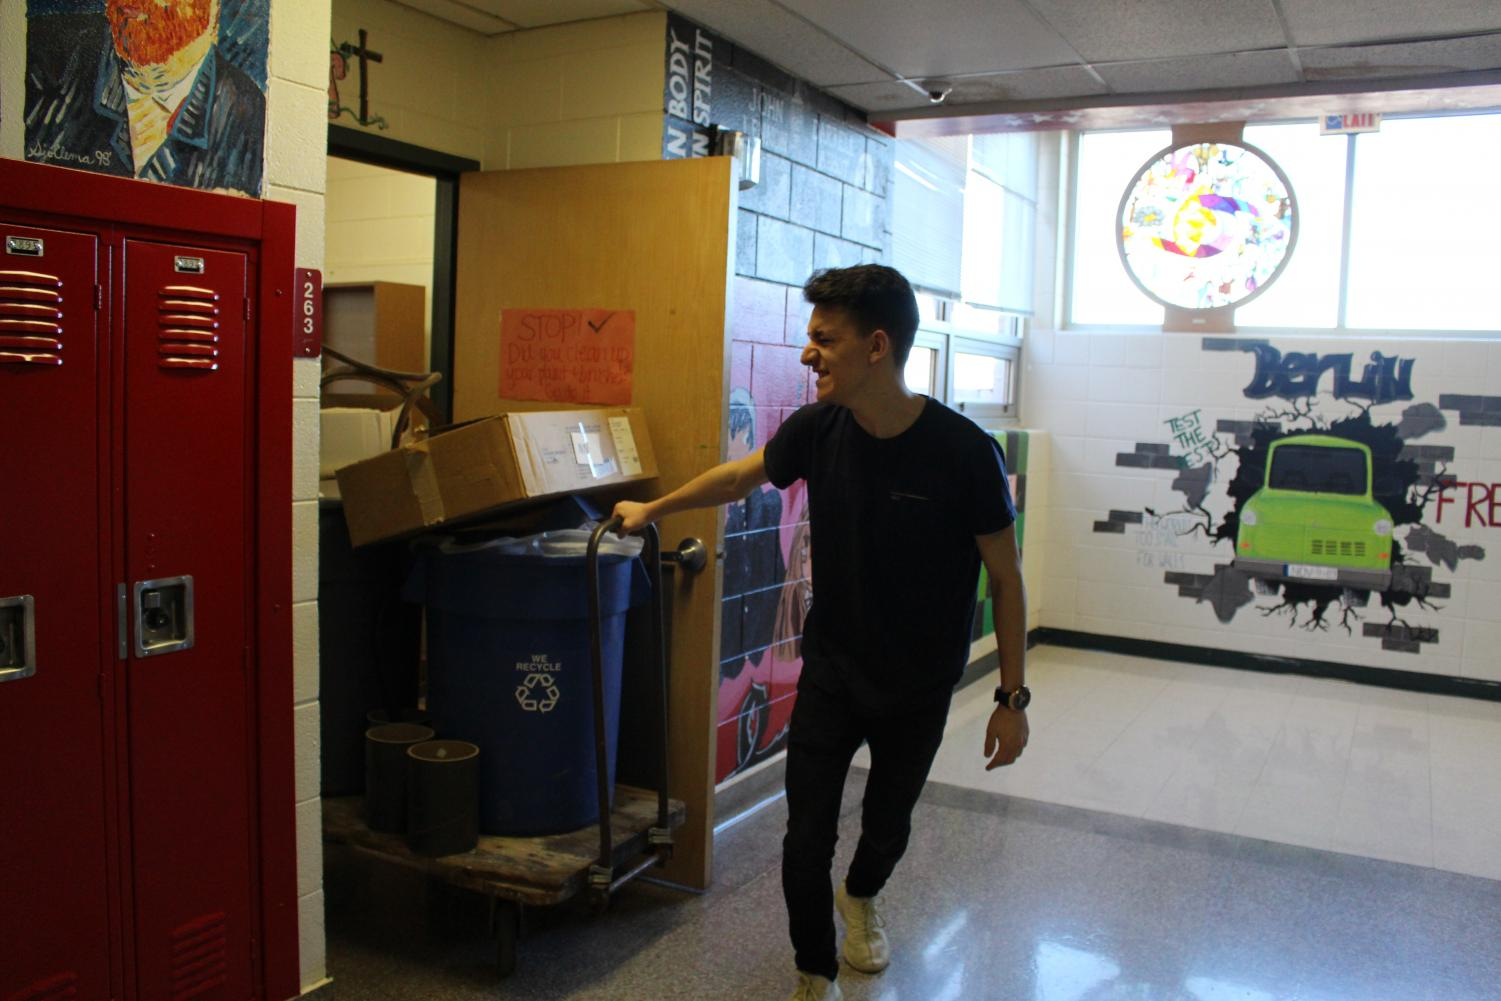 Senior%2C+Dorian+Laraku+helps+pull+the+trash+out+of+the+newly+cleaned+student+council+work+room.